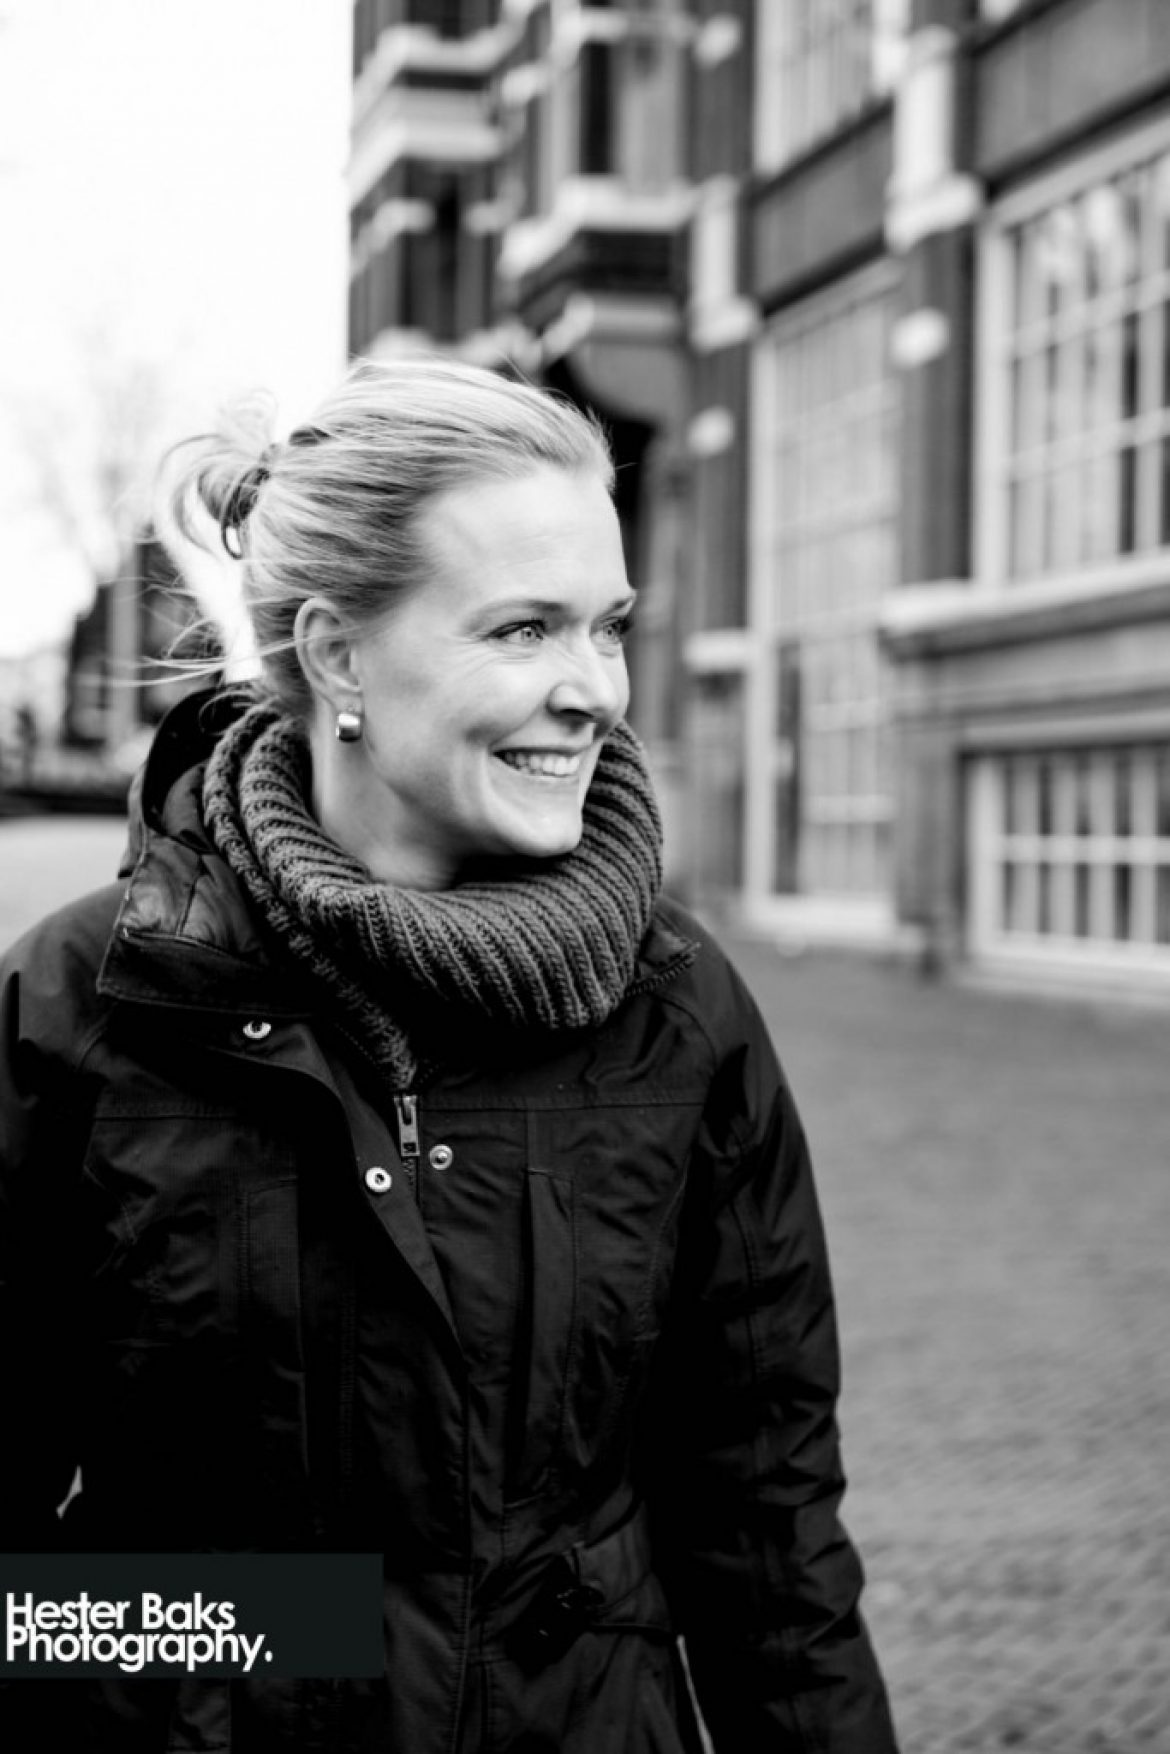 Portrait of Femke Blokhuis #blackandwhite #photography #portrait #Amsterdam #picoftheday